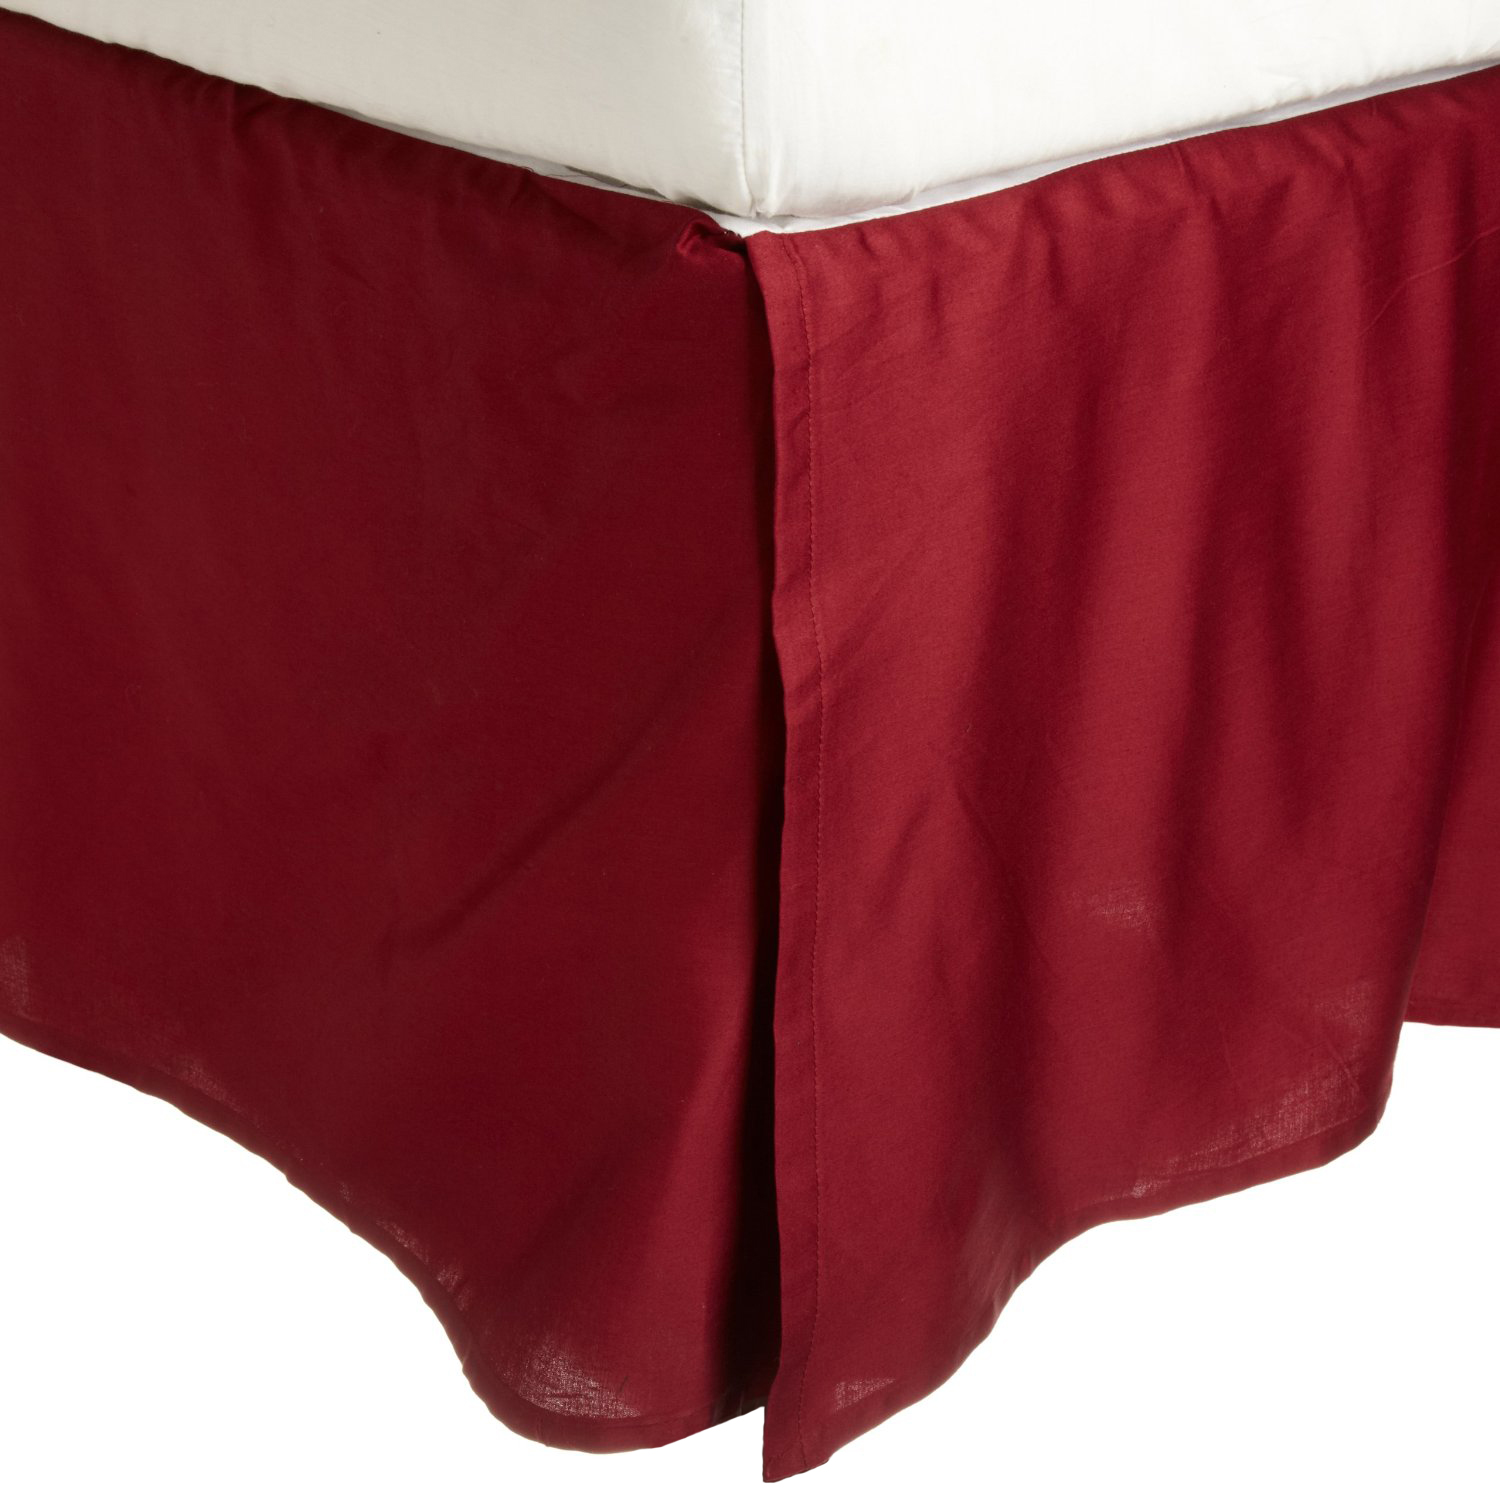 Bed Skirt 15 Drop 300 Thread Count Dust Ruffle 10